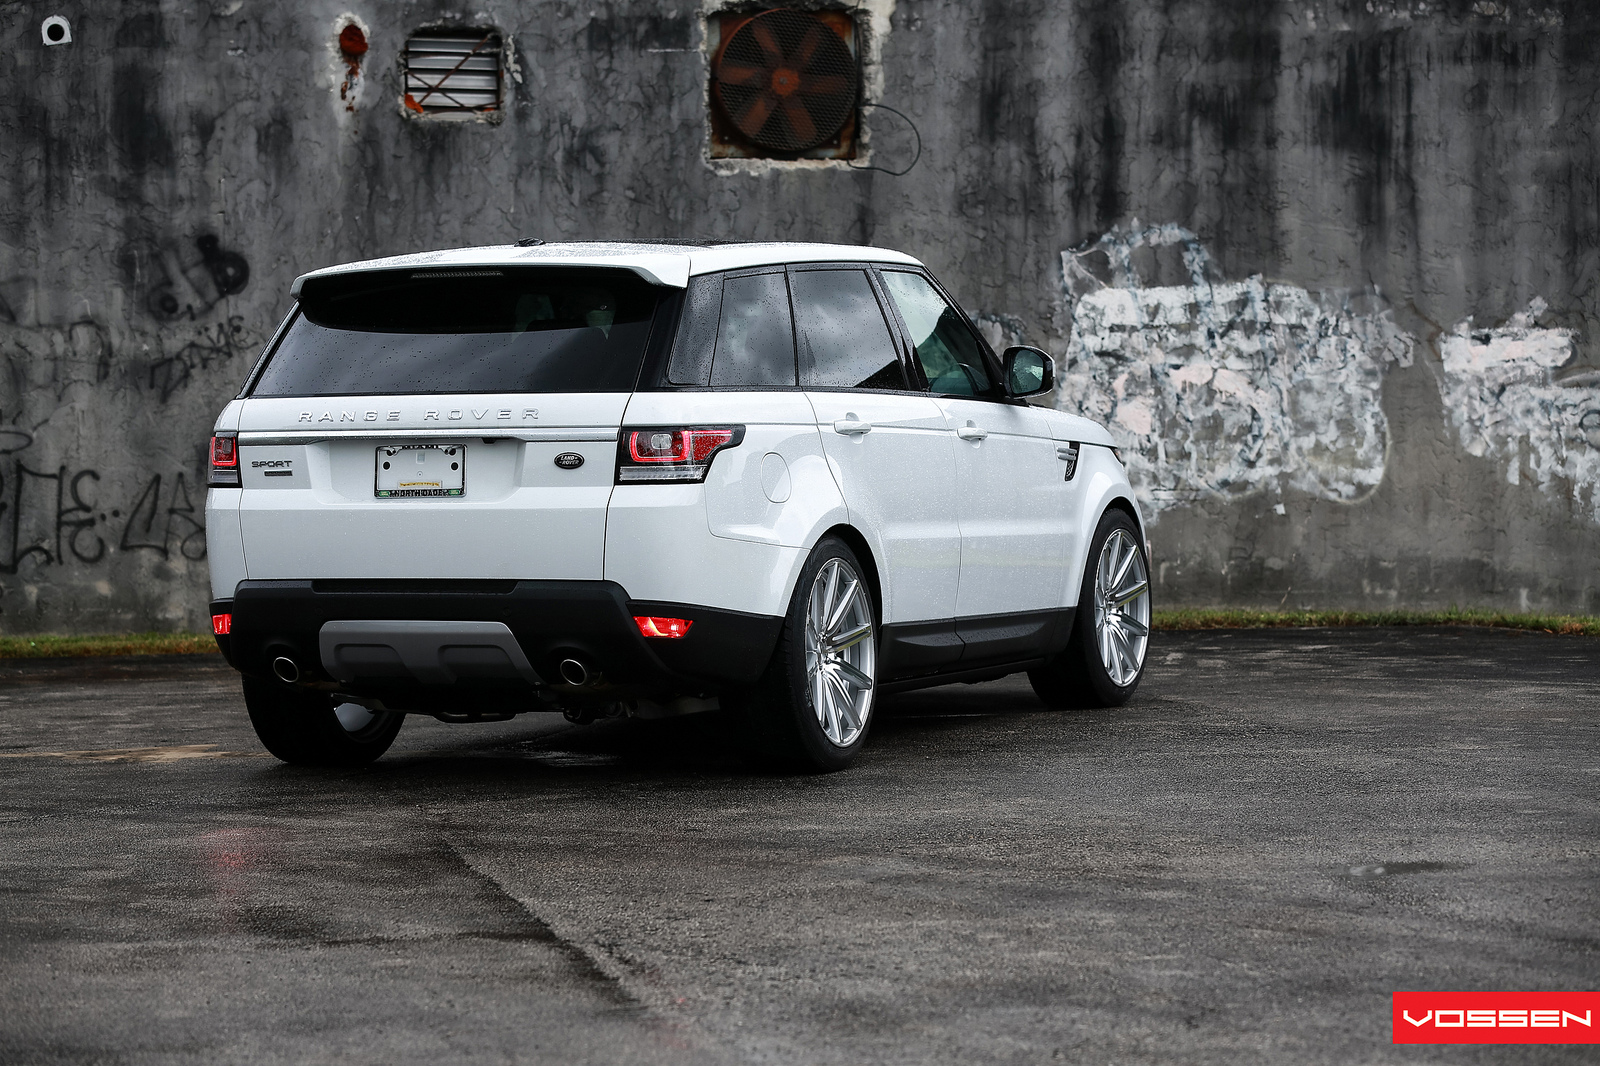 Car Engines For Sale >> 2014 Range Rover Sport Gets Vossen Wheels - autoevolution